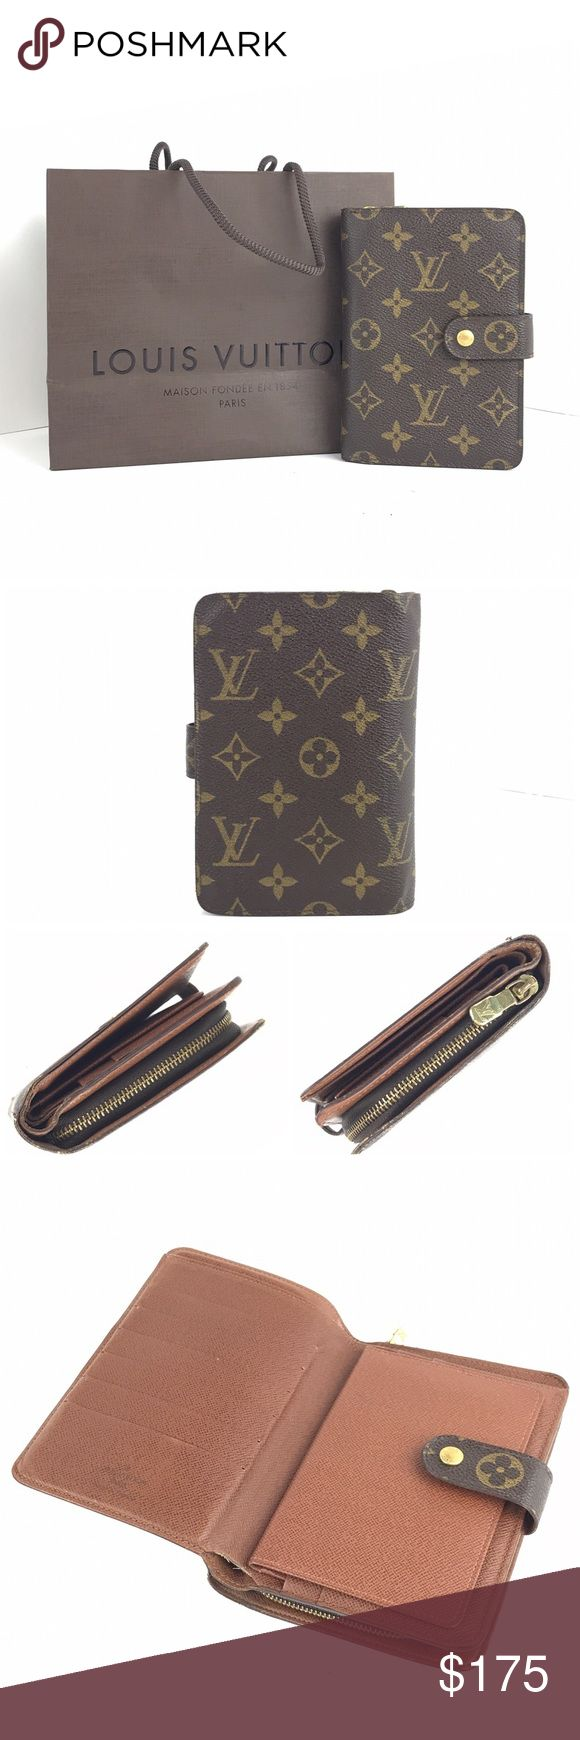 Louis Vuitton Monogram Zip Compact Louis Vuitton Monogram Zip Compact ________________________________ Item Description Made in [France] ~ Date Code [SP0010] Material [PVC/Leather] ~ Color [Monogram] _____________________________ Condition Outside [Excellent] Scratches, stains and edge wear - - - - - - - - Inside [Good] Scratches and stains, rubbing marks, peeling (not sticky) and staining on plastic ID Louis Vuitton Accessories Key & Card Holders